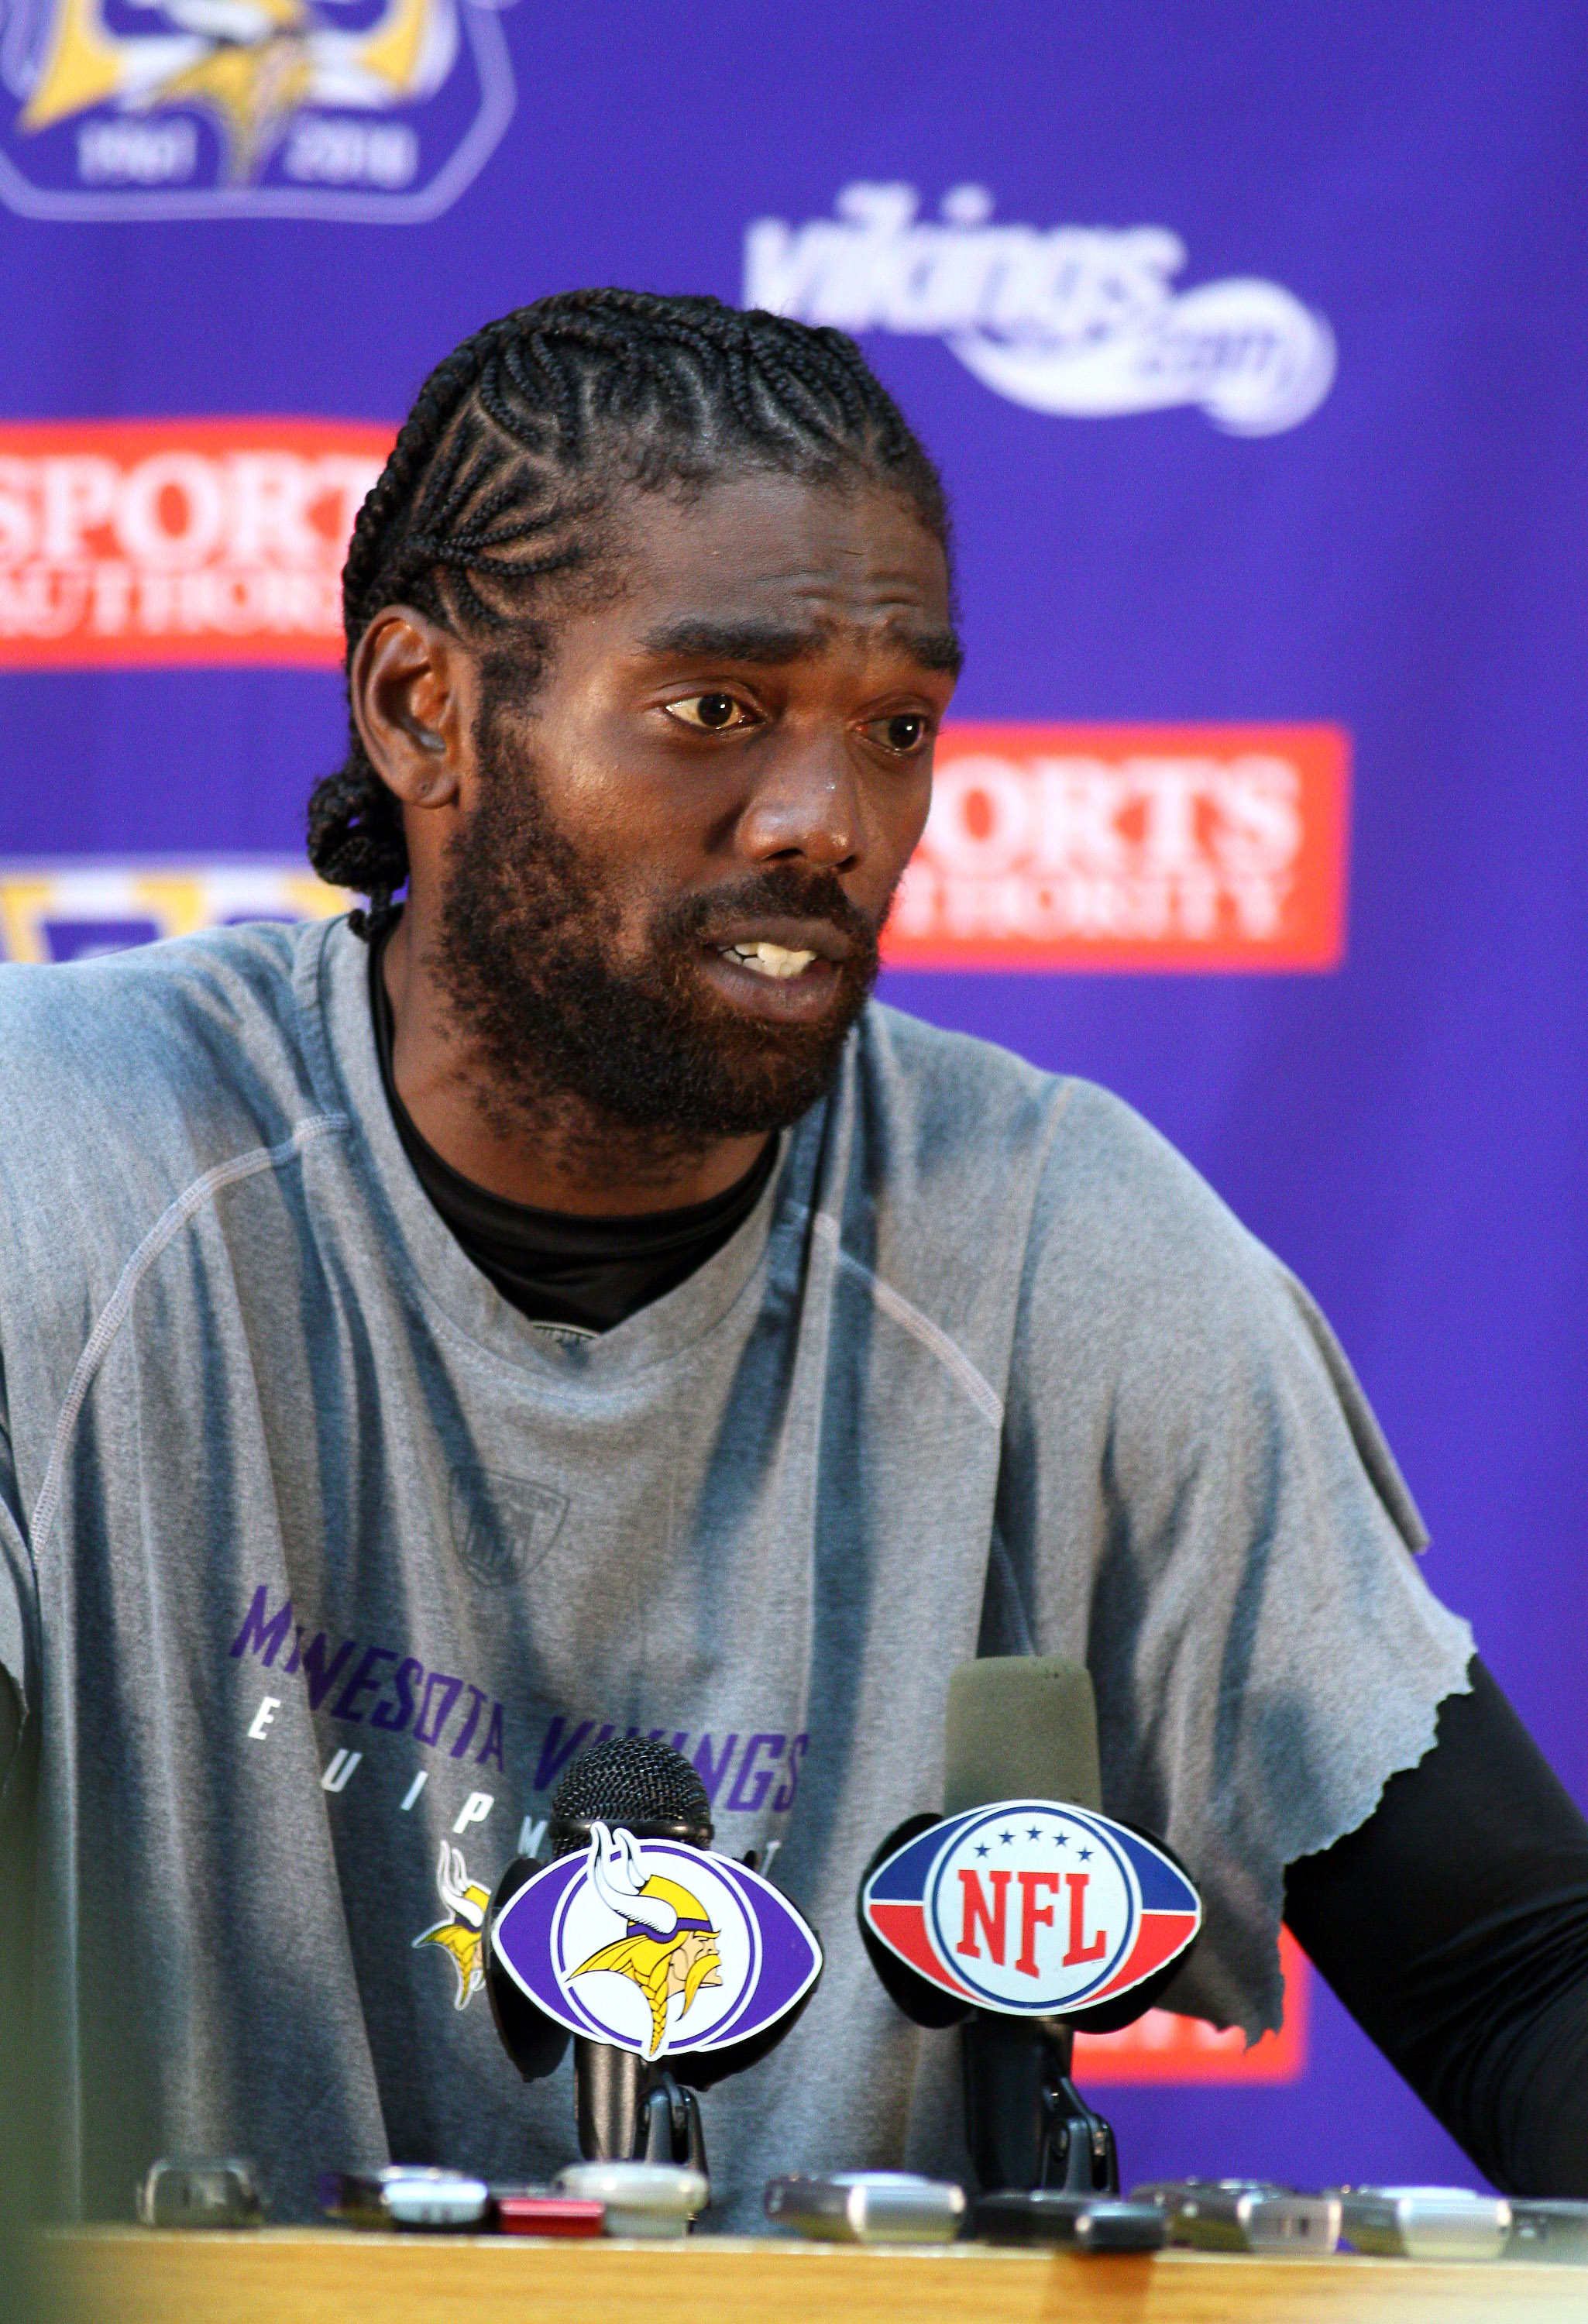 EDEN PRAIRIE, MN - OCTOBER 7:  Minnesota Vikings wide receiver Randy Moss answers questions from the media during a press conference at Winter Park on October 7, 2010 in Eden Prairie, Minnesota.  (Photo by Adam Bettcher/Getty Images)